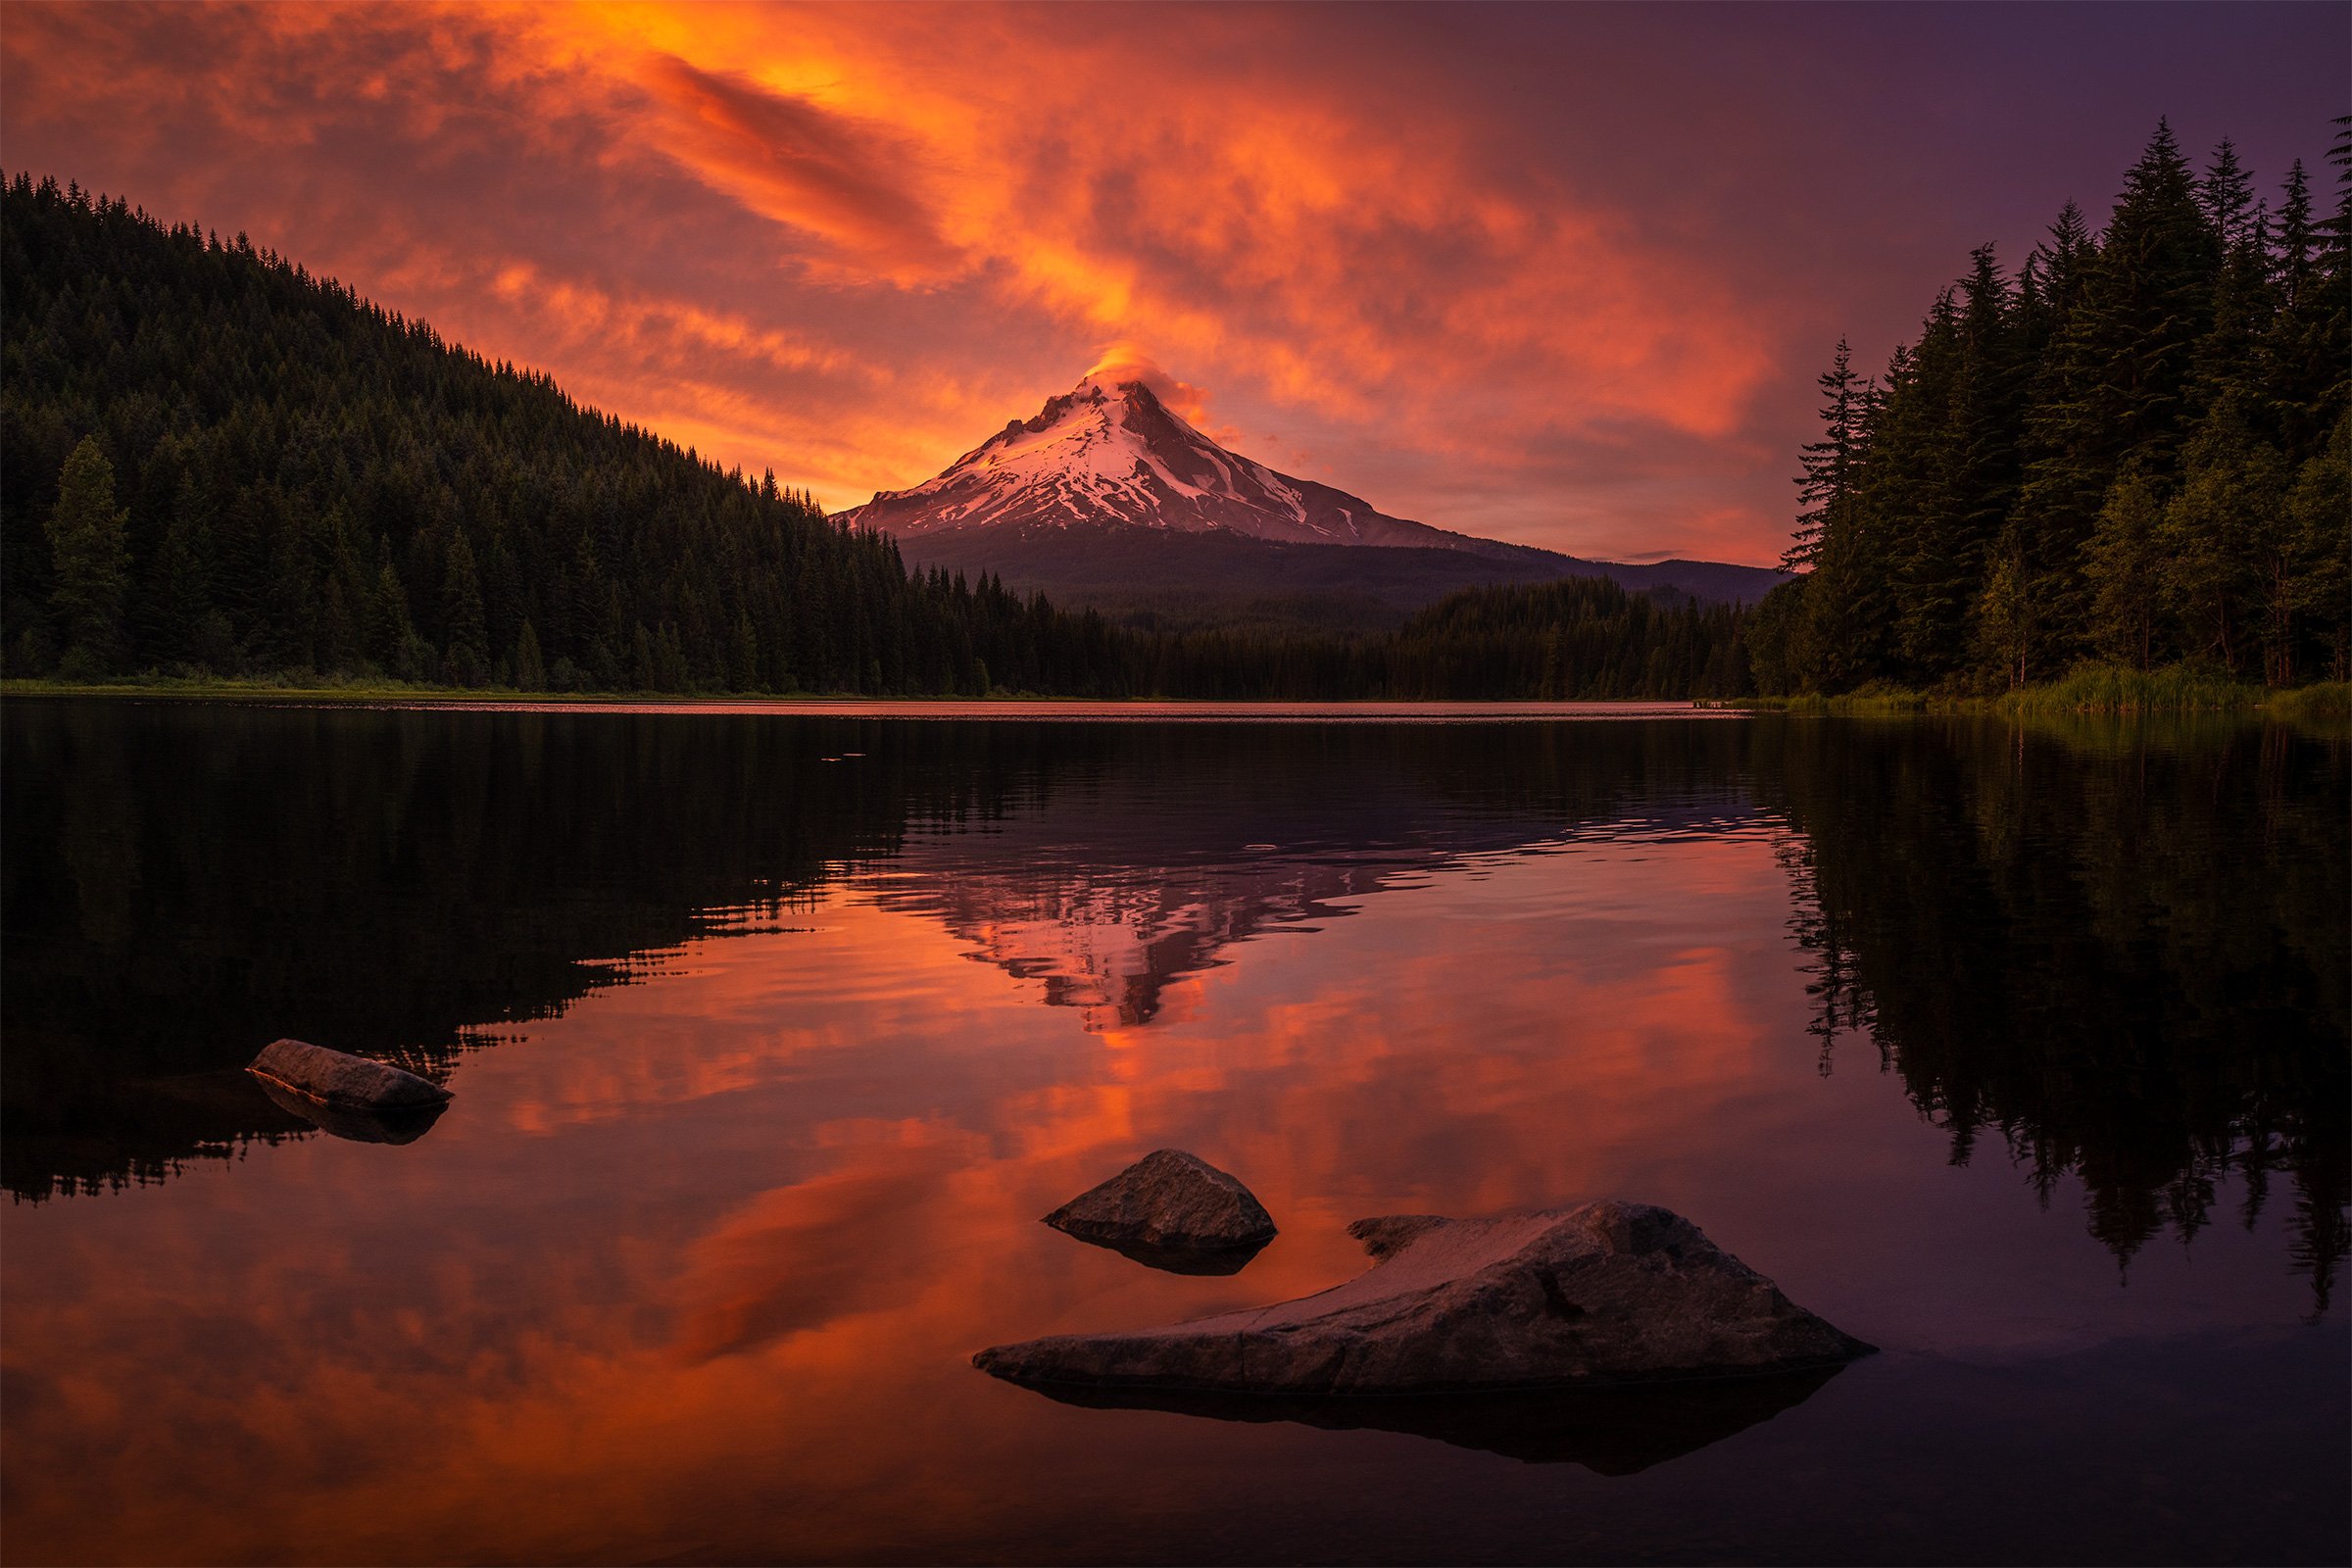 MT HOOD MAJESTY